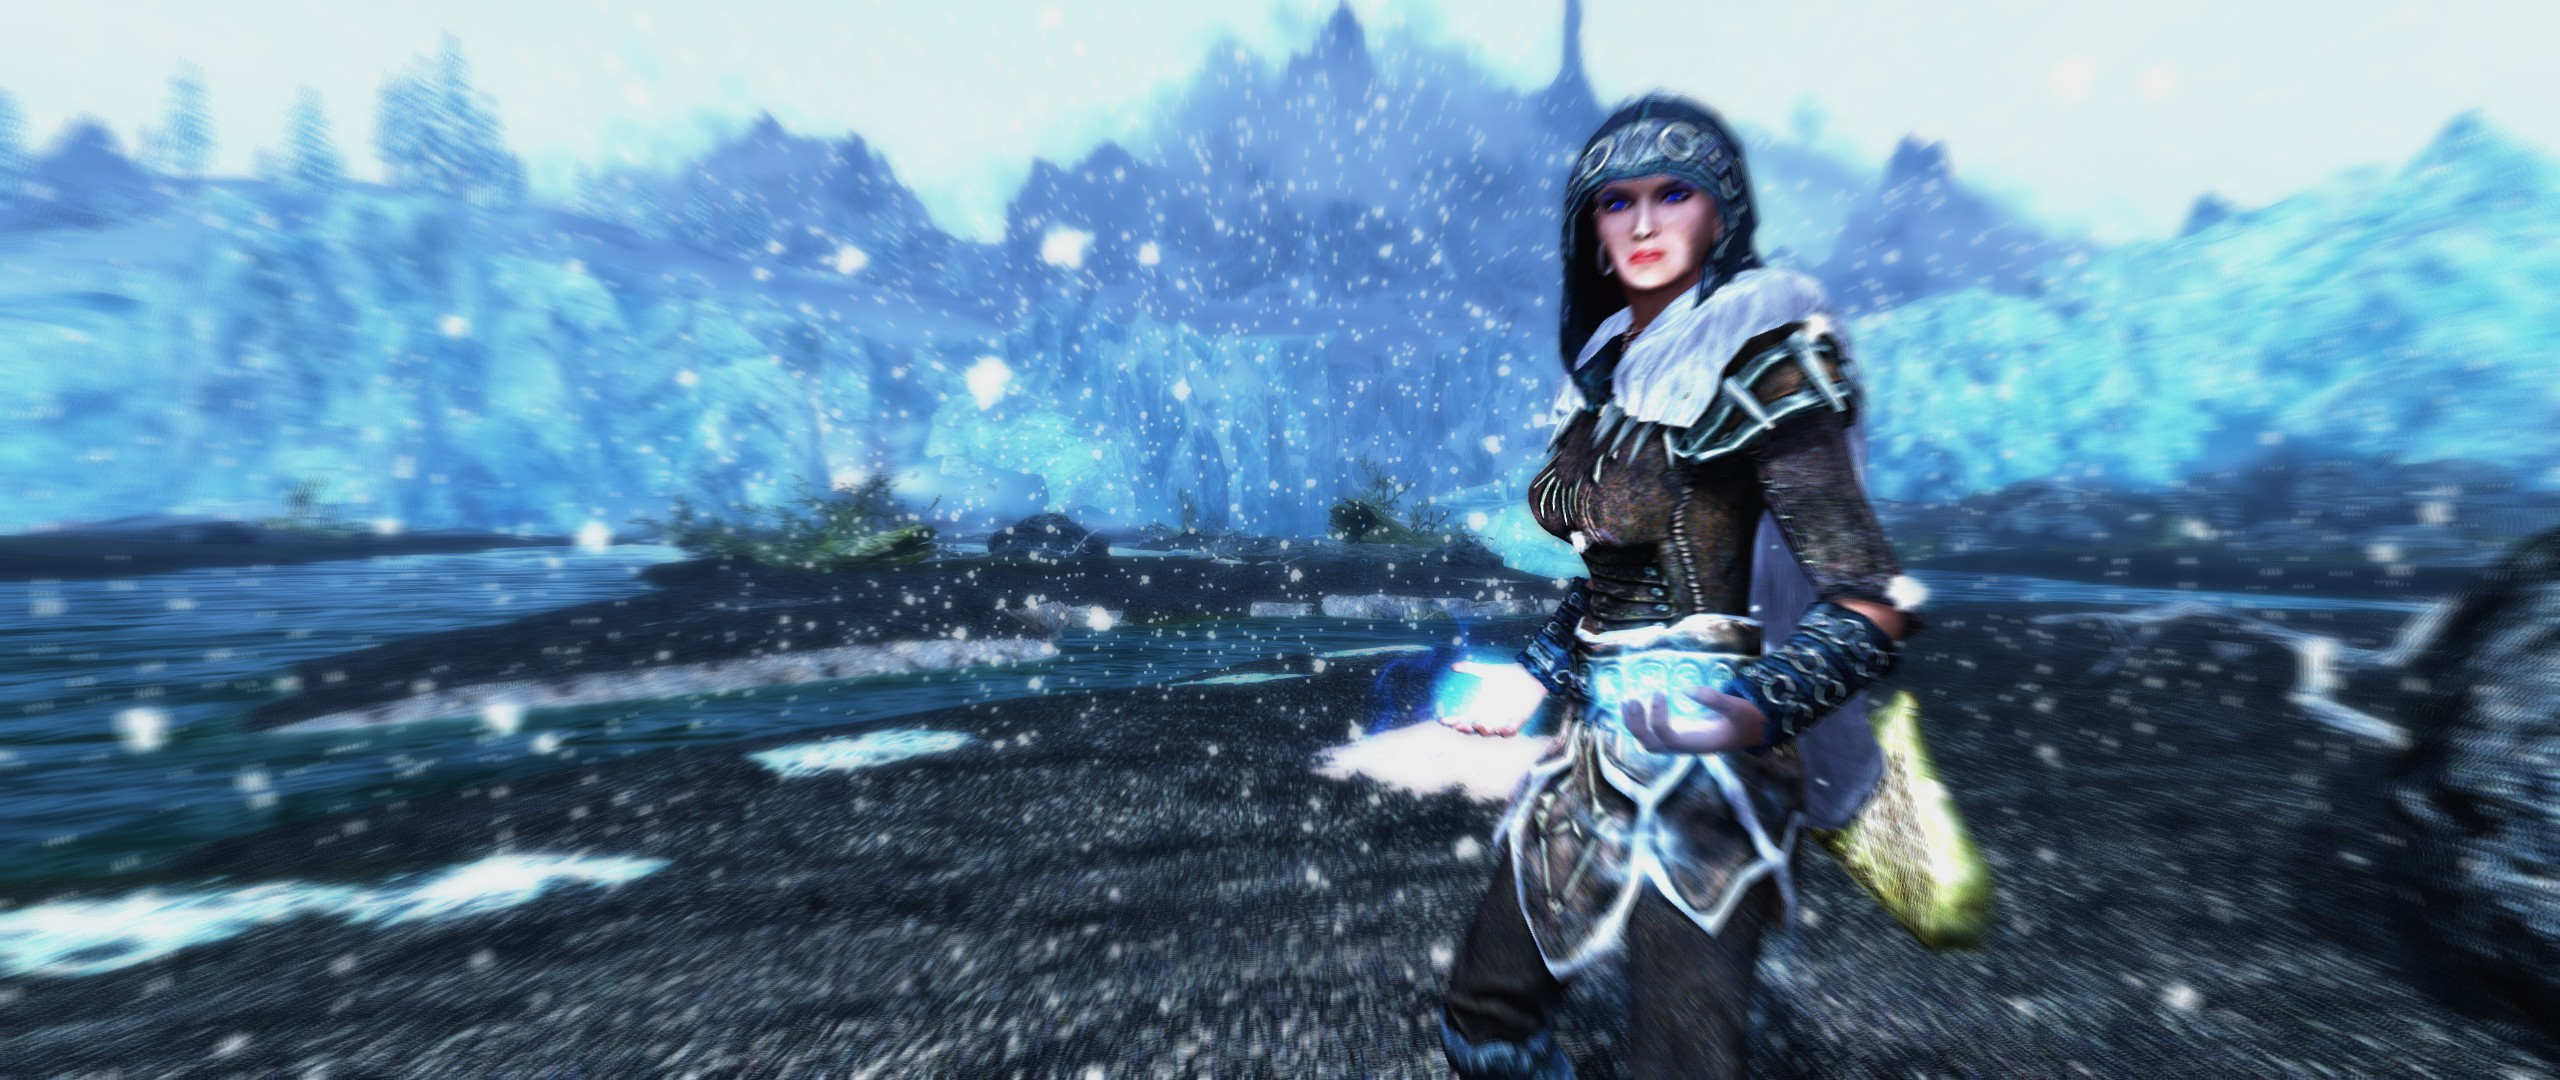 Ordinator skyrim builds